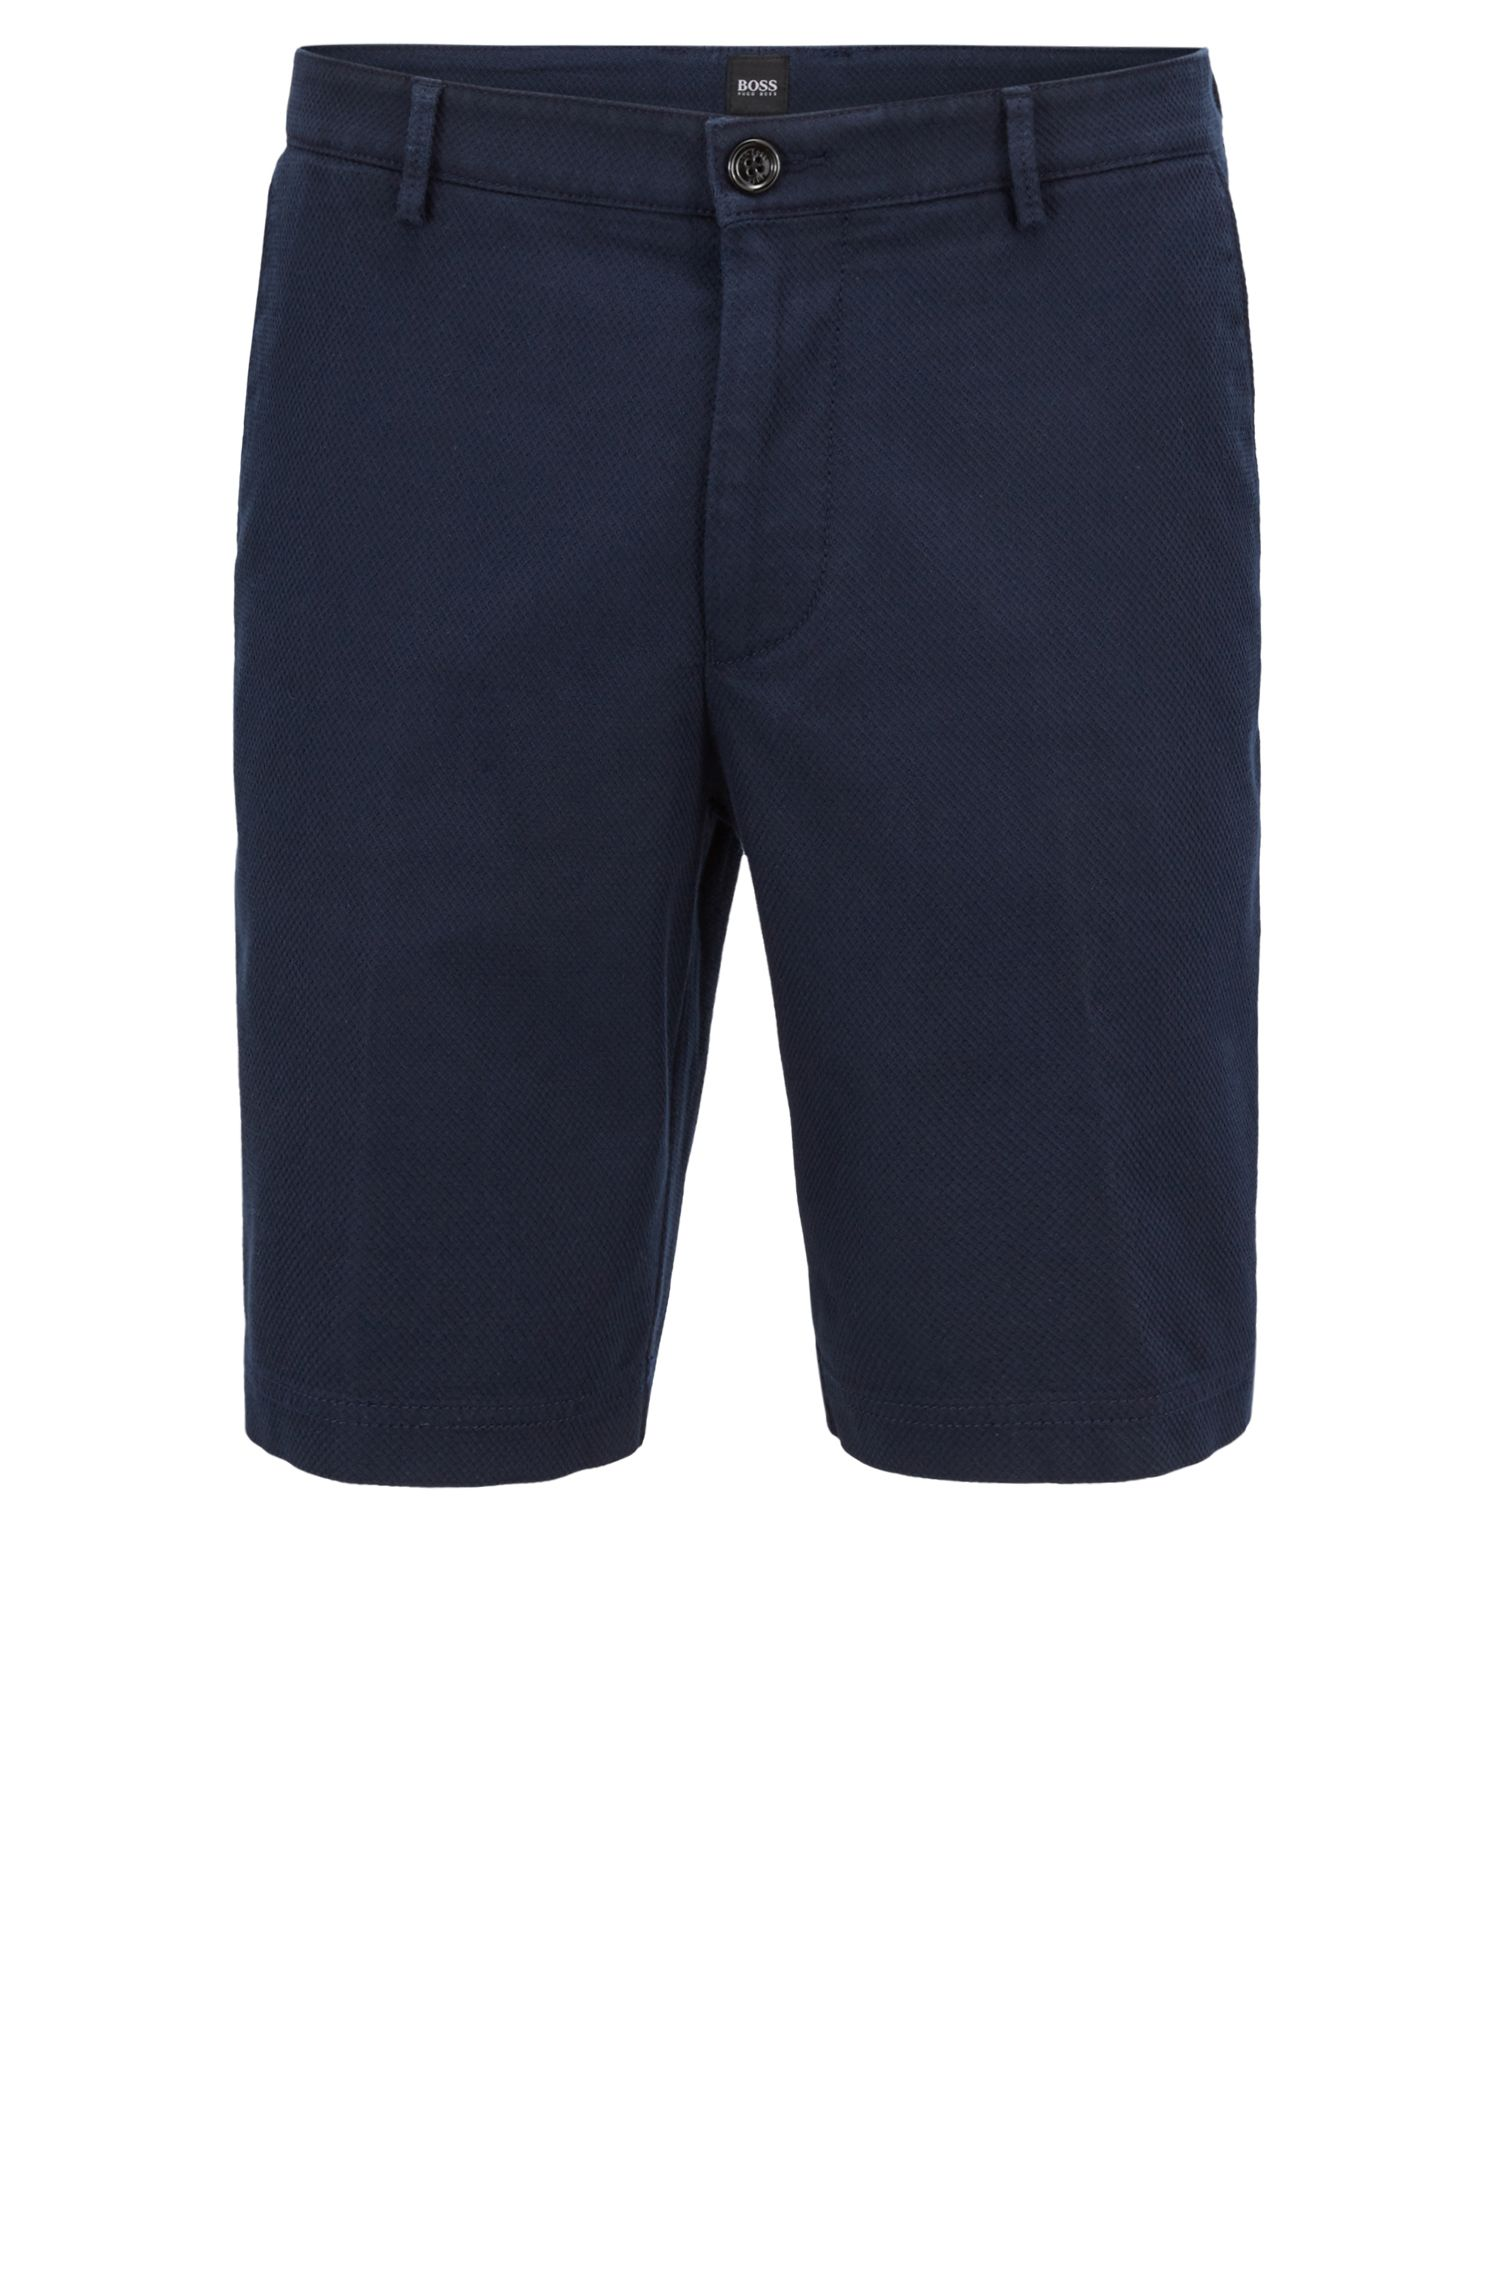 Regular-Fit Shorts aus strukturierter Stretch-Baumwolle, Dunkelblau